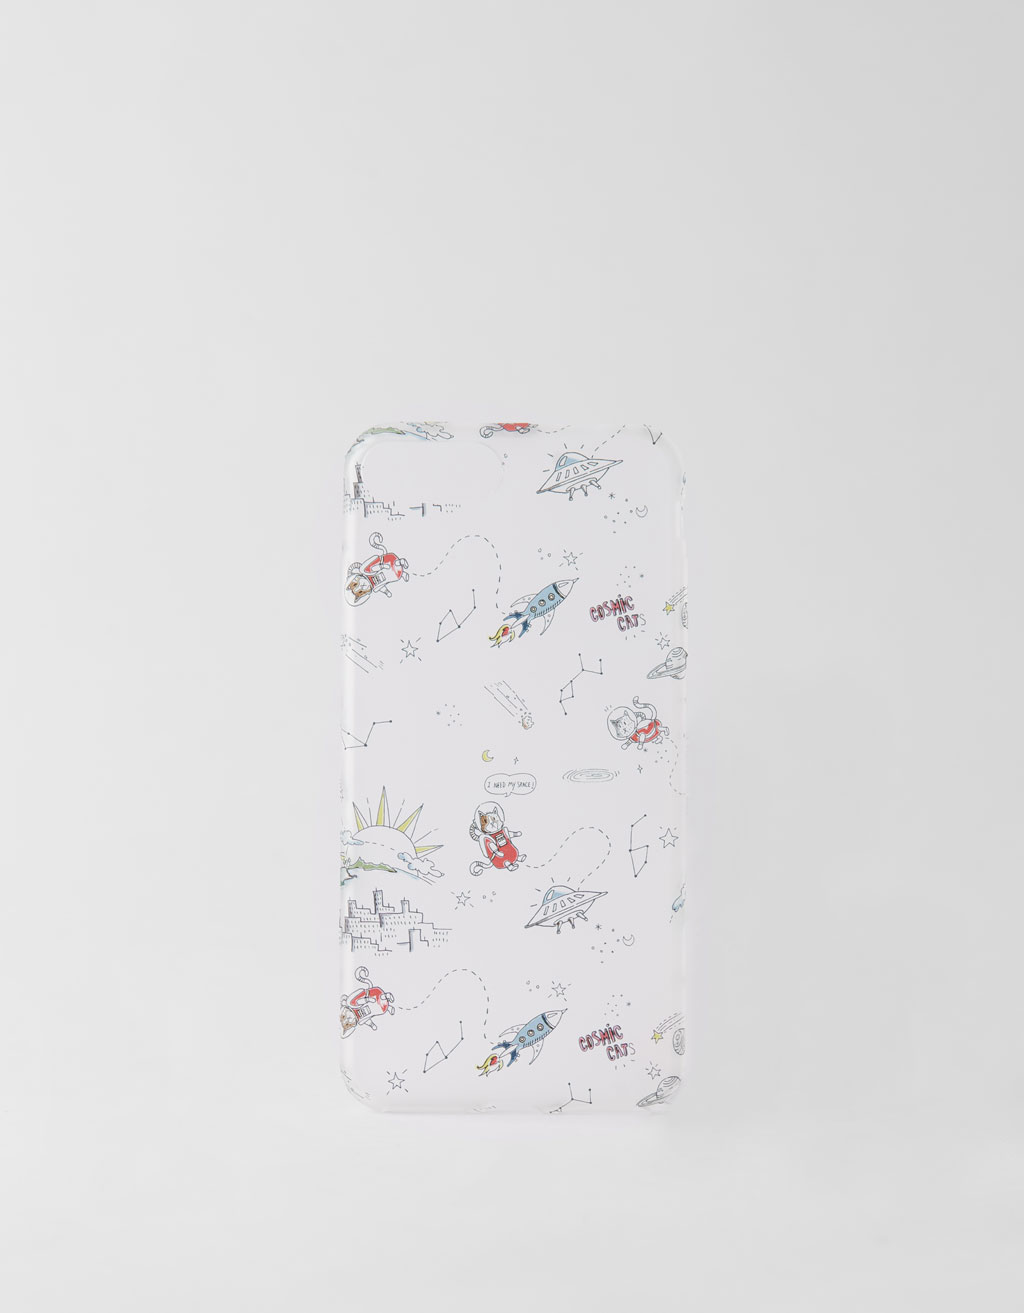 Hoesje Cosmic voor iPhone 6 plus/7 plus/8 plus